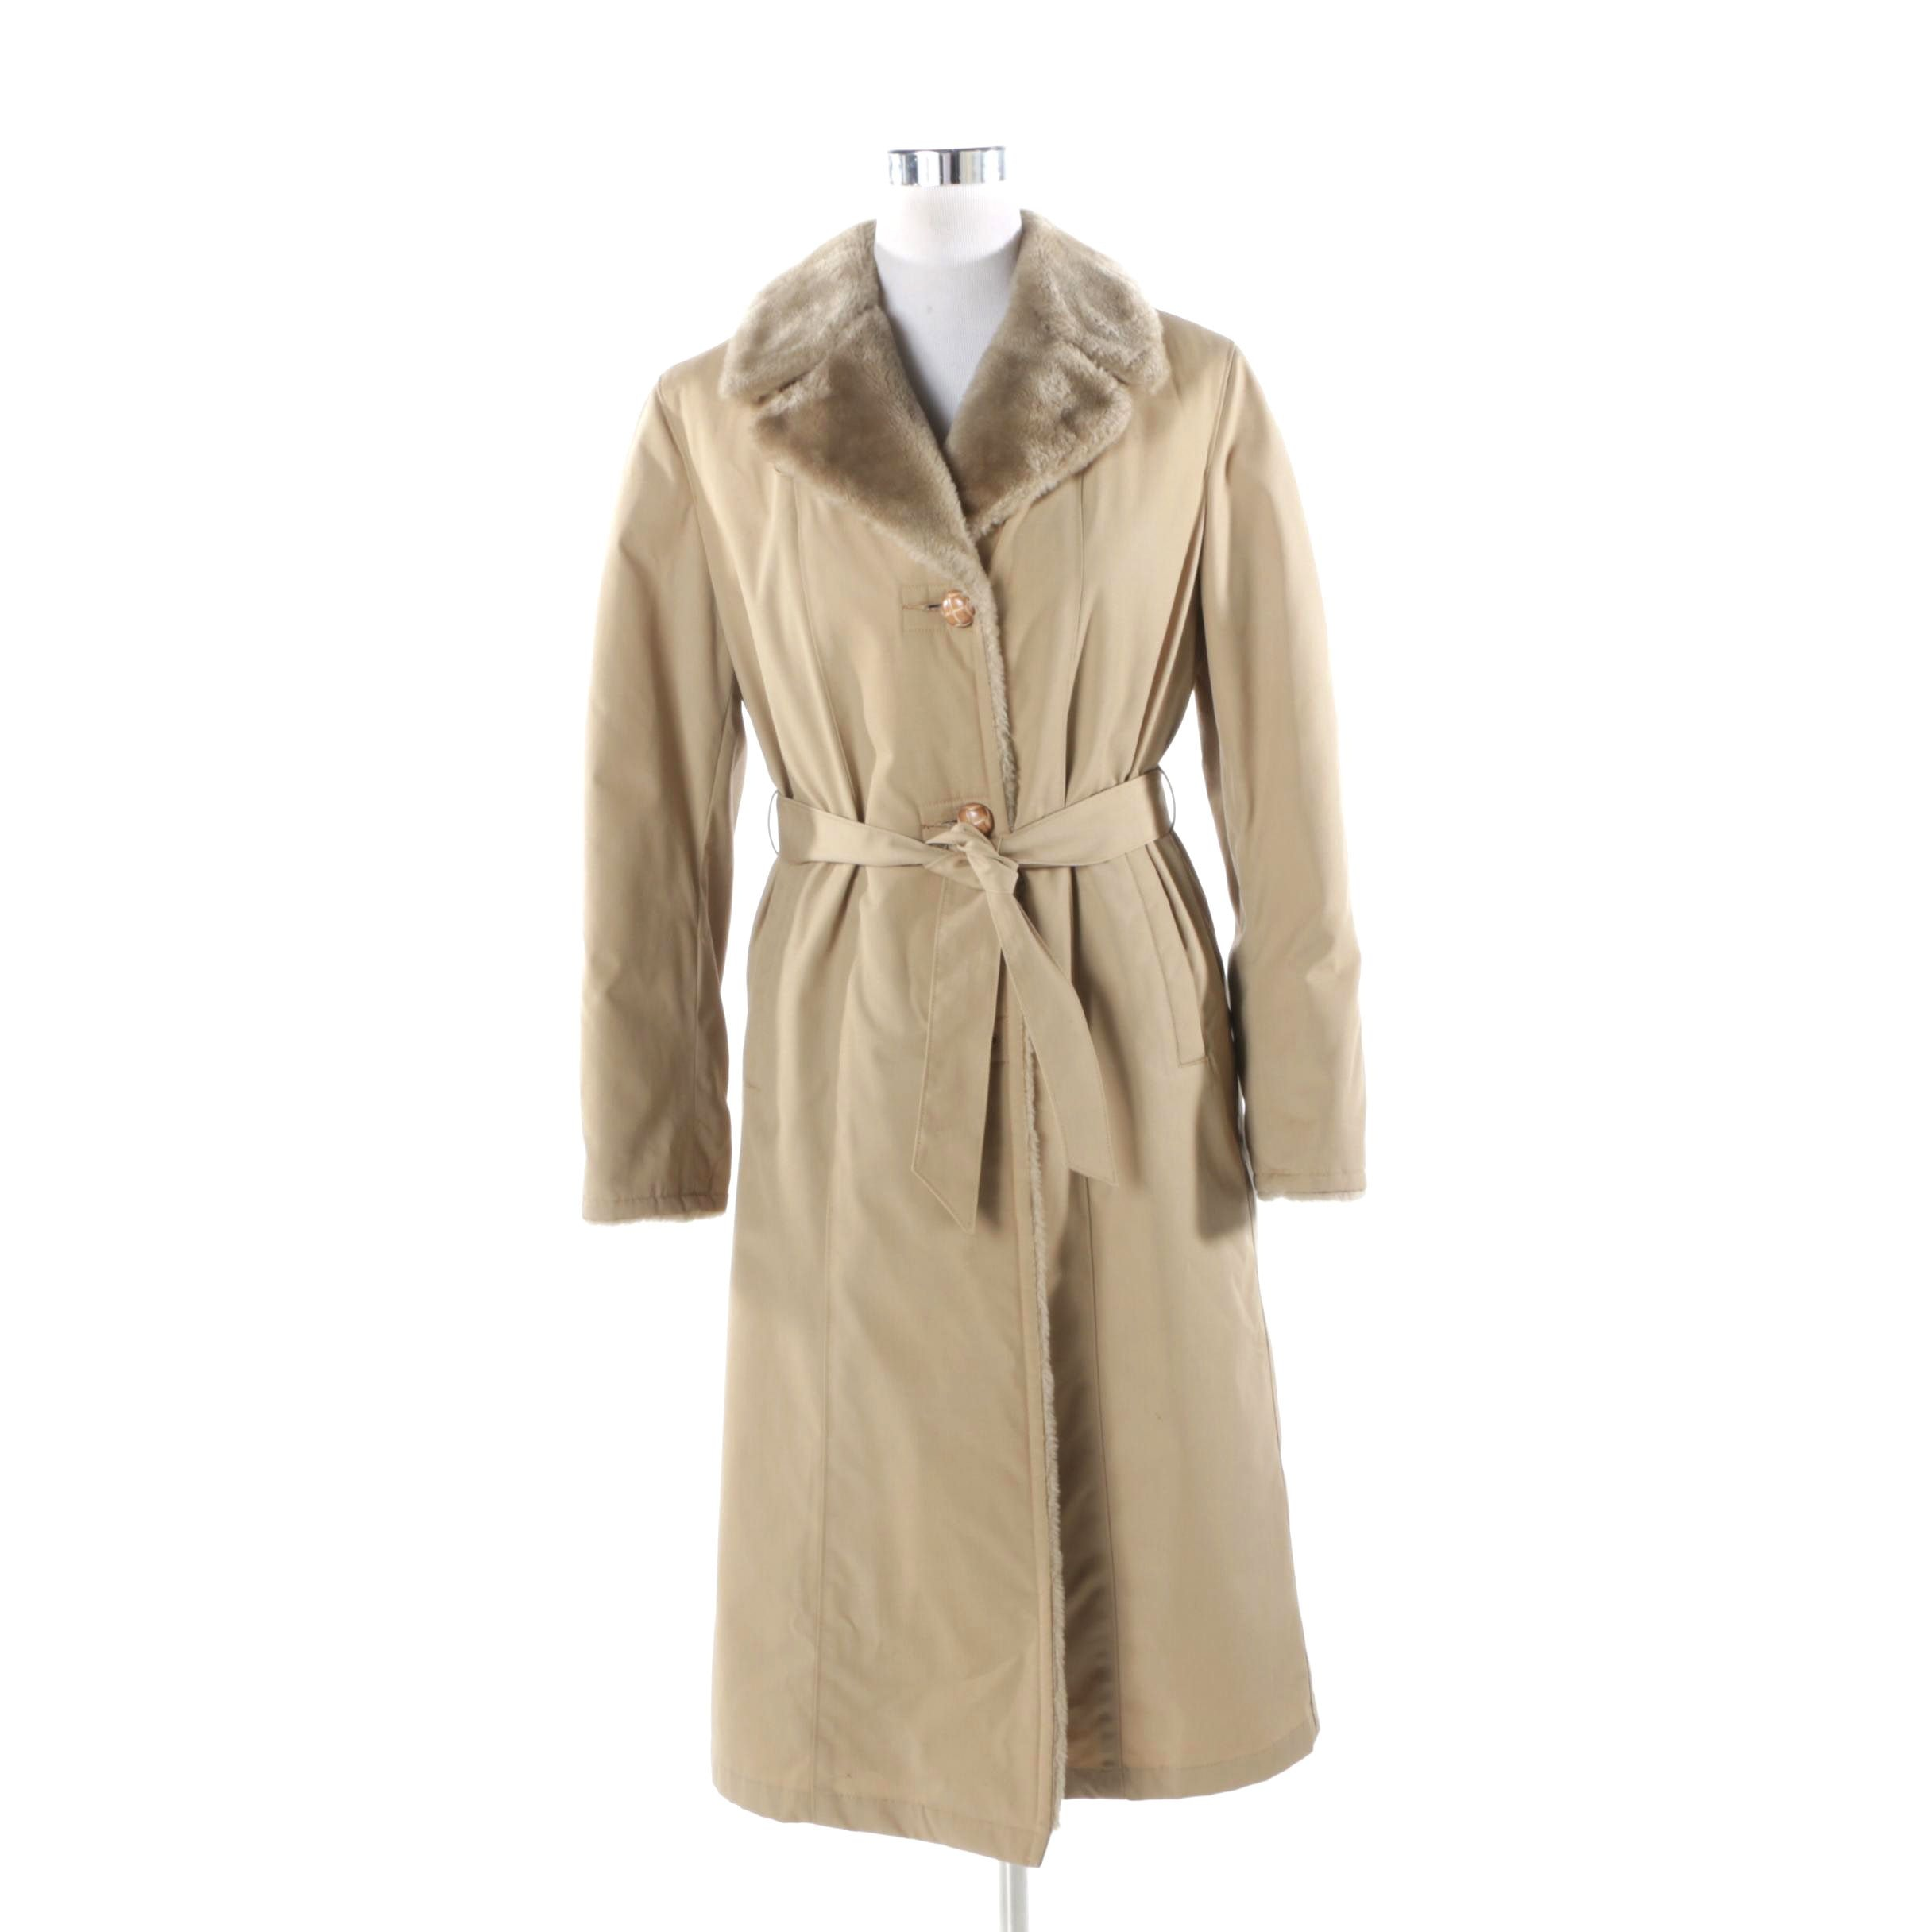 Vintage Mighty Mac Beige Coat with Faux Fur Lining